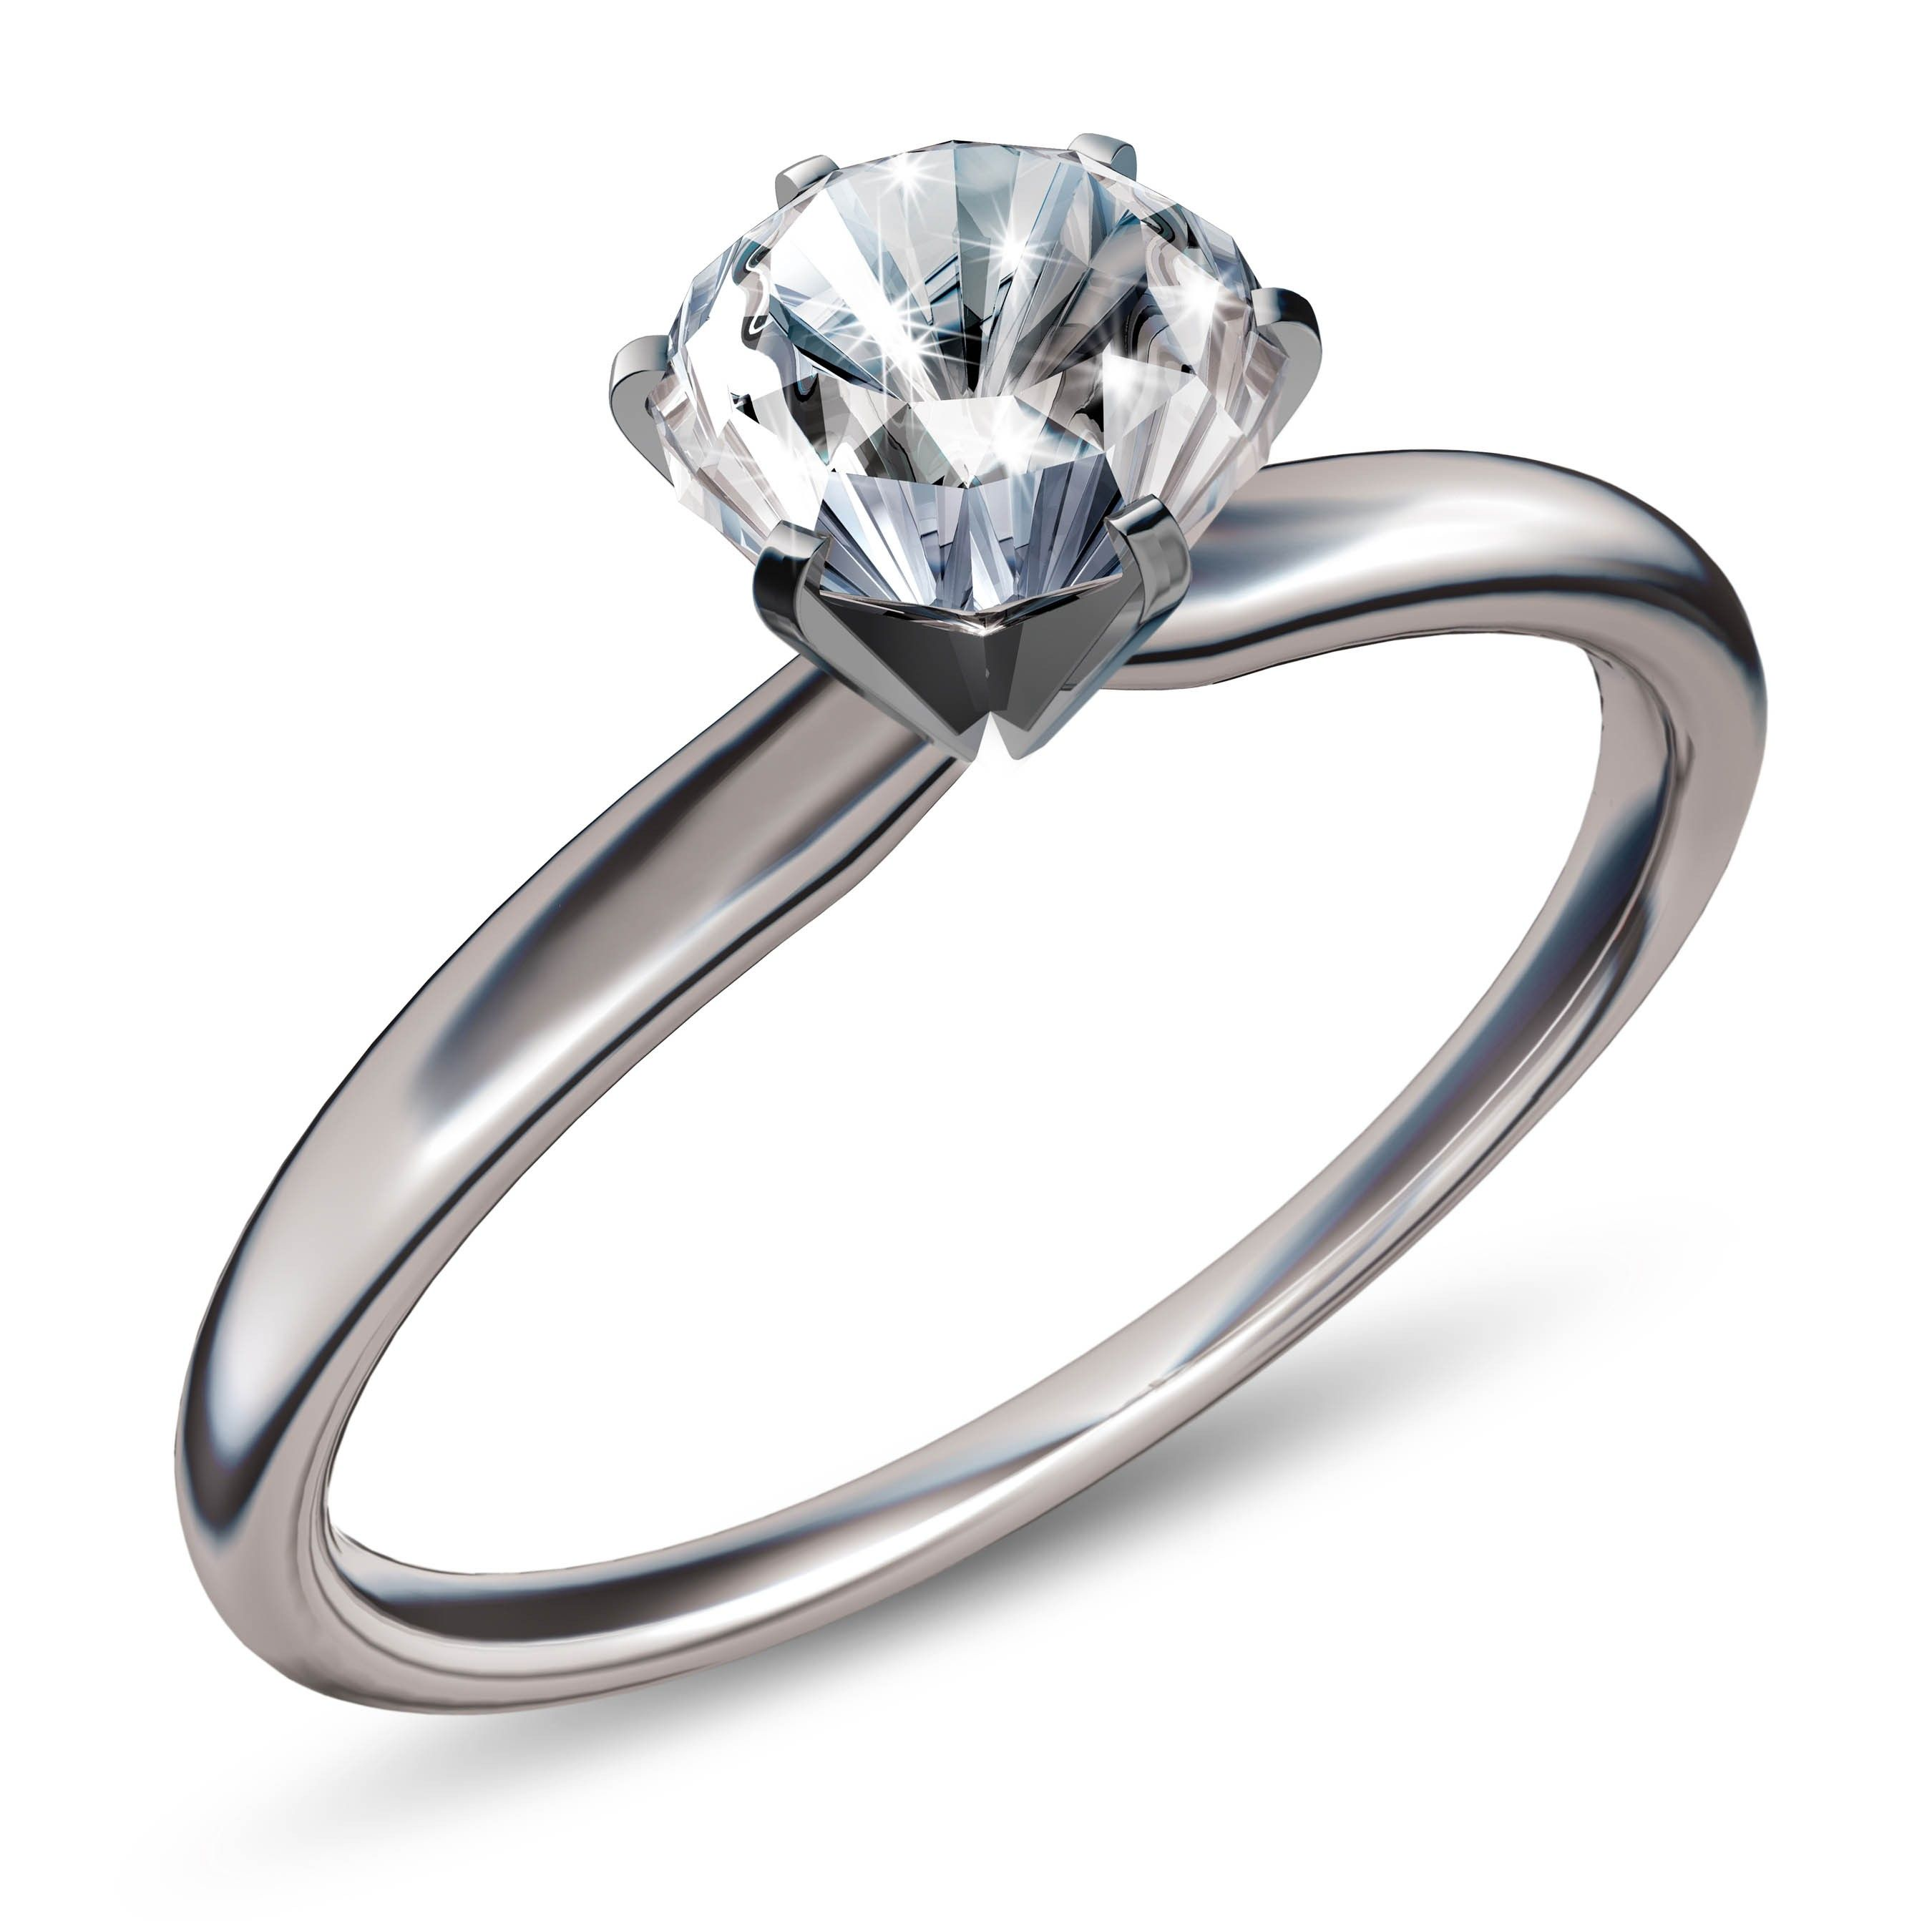 platinum engagement ring vs wedding ring - Solitaire Wedding Rings